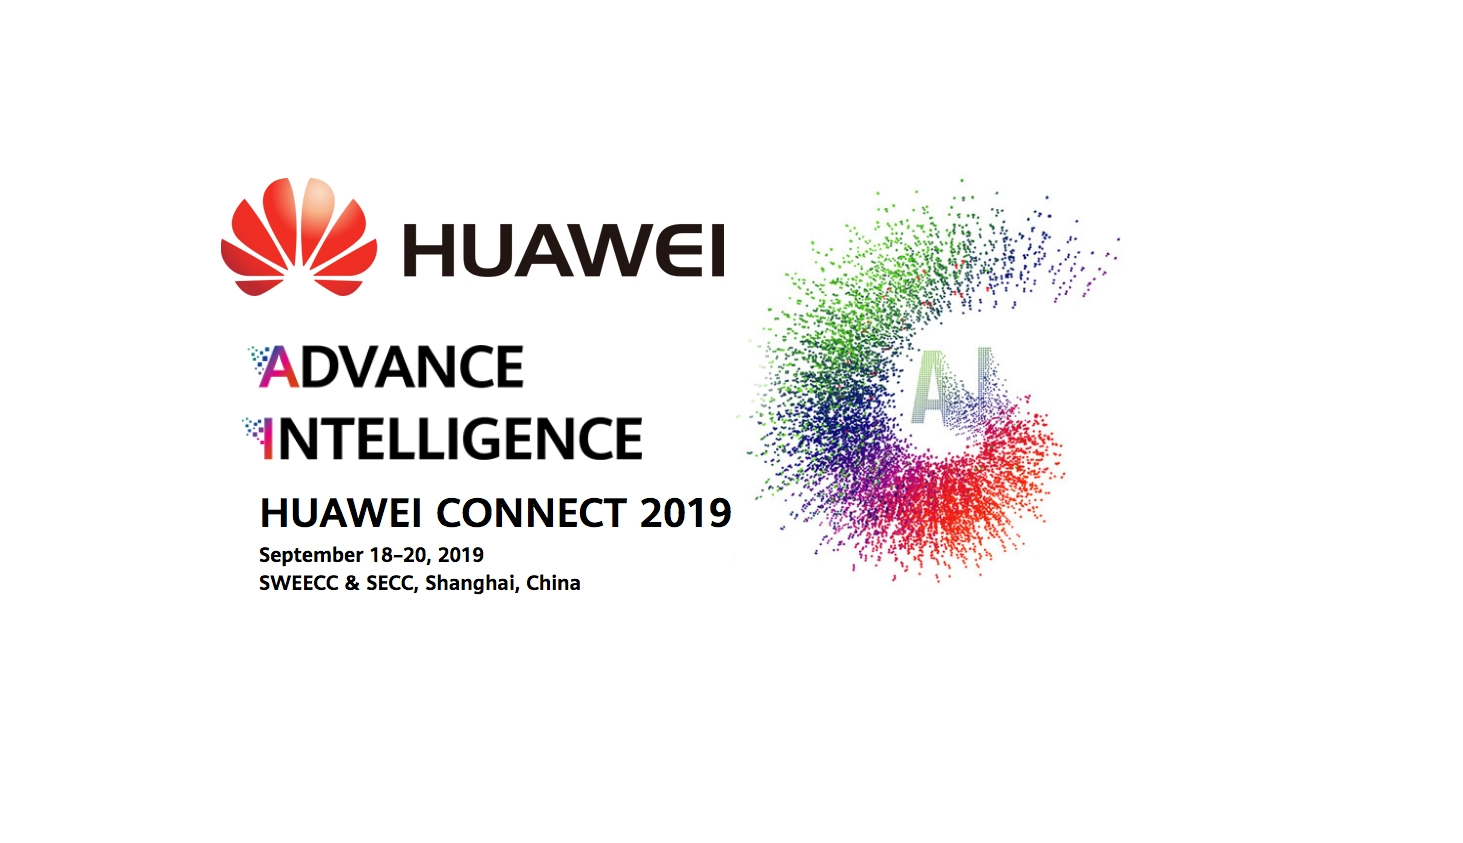 HUAWEI CONNECT 2019 streaming live from Shanghai Expo Center 1